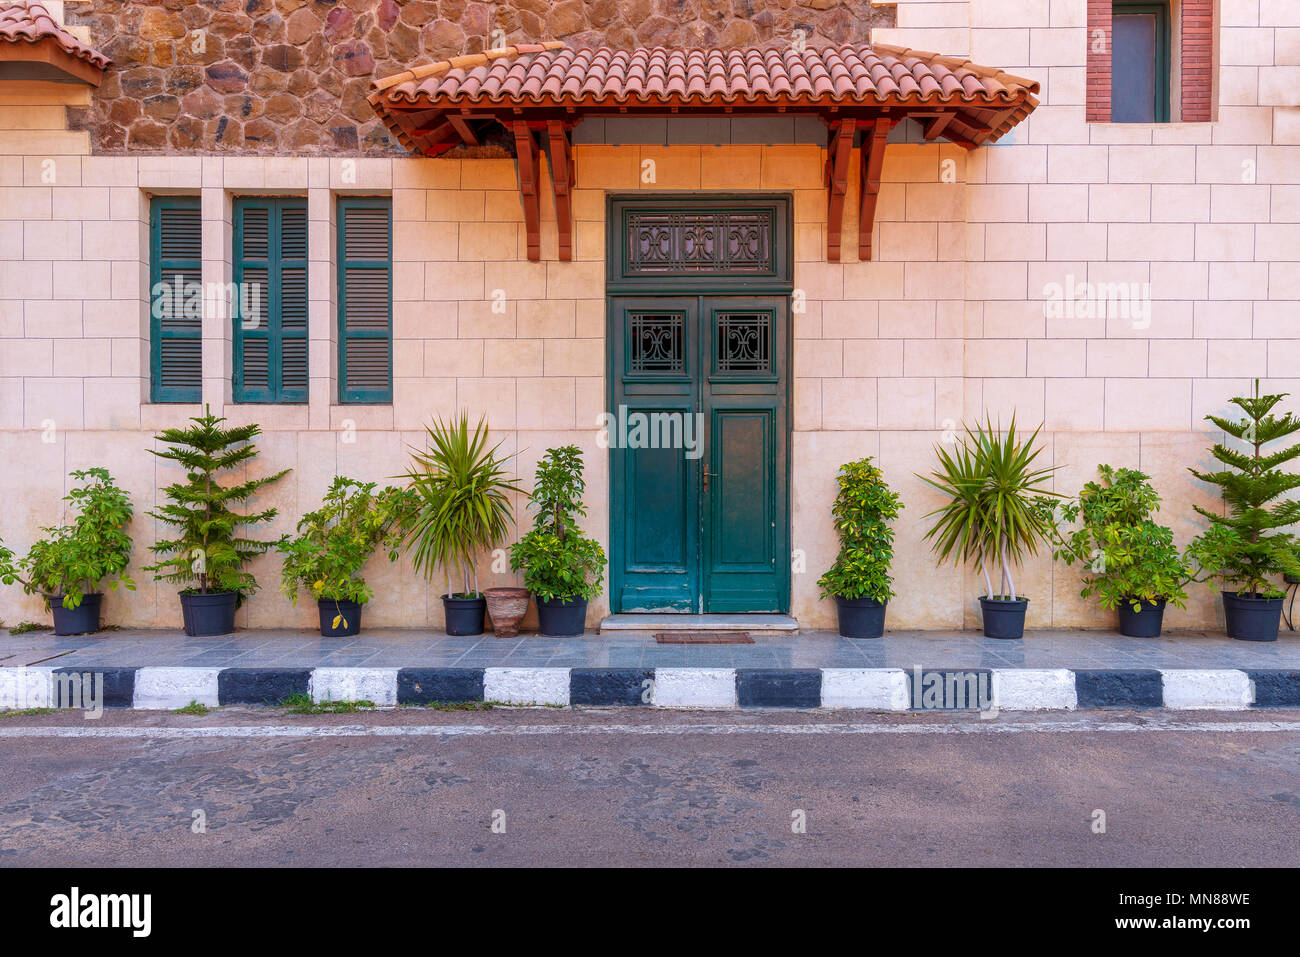 Facade of the clock tower in Montaza public park with green wooden door with red tile canopy above and window shutters on stone bricks wall, Alexandri - Stock Image